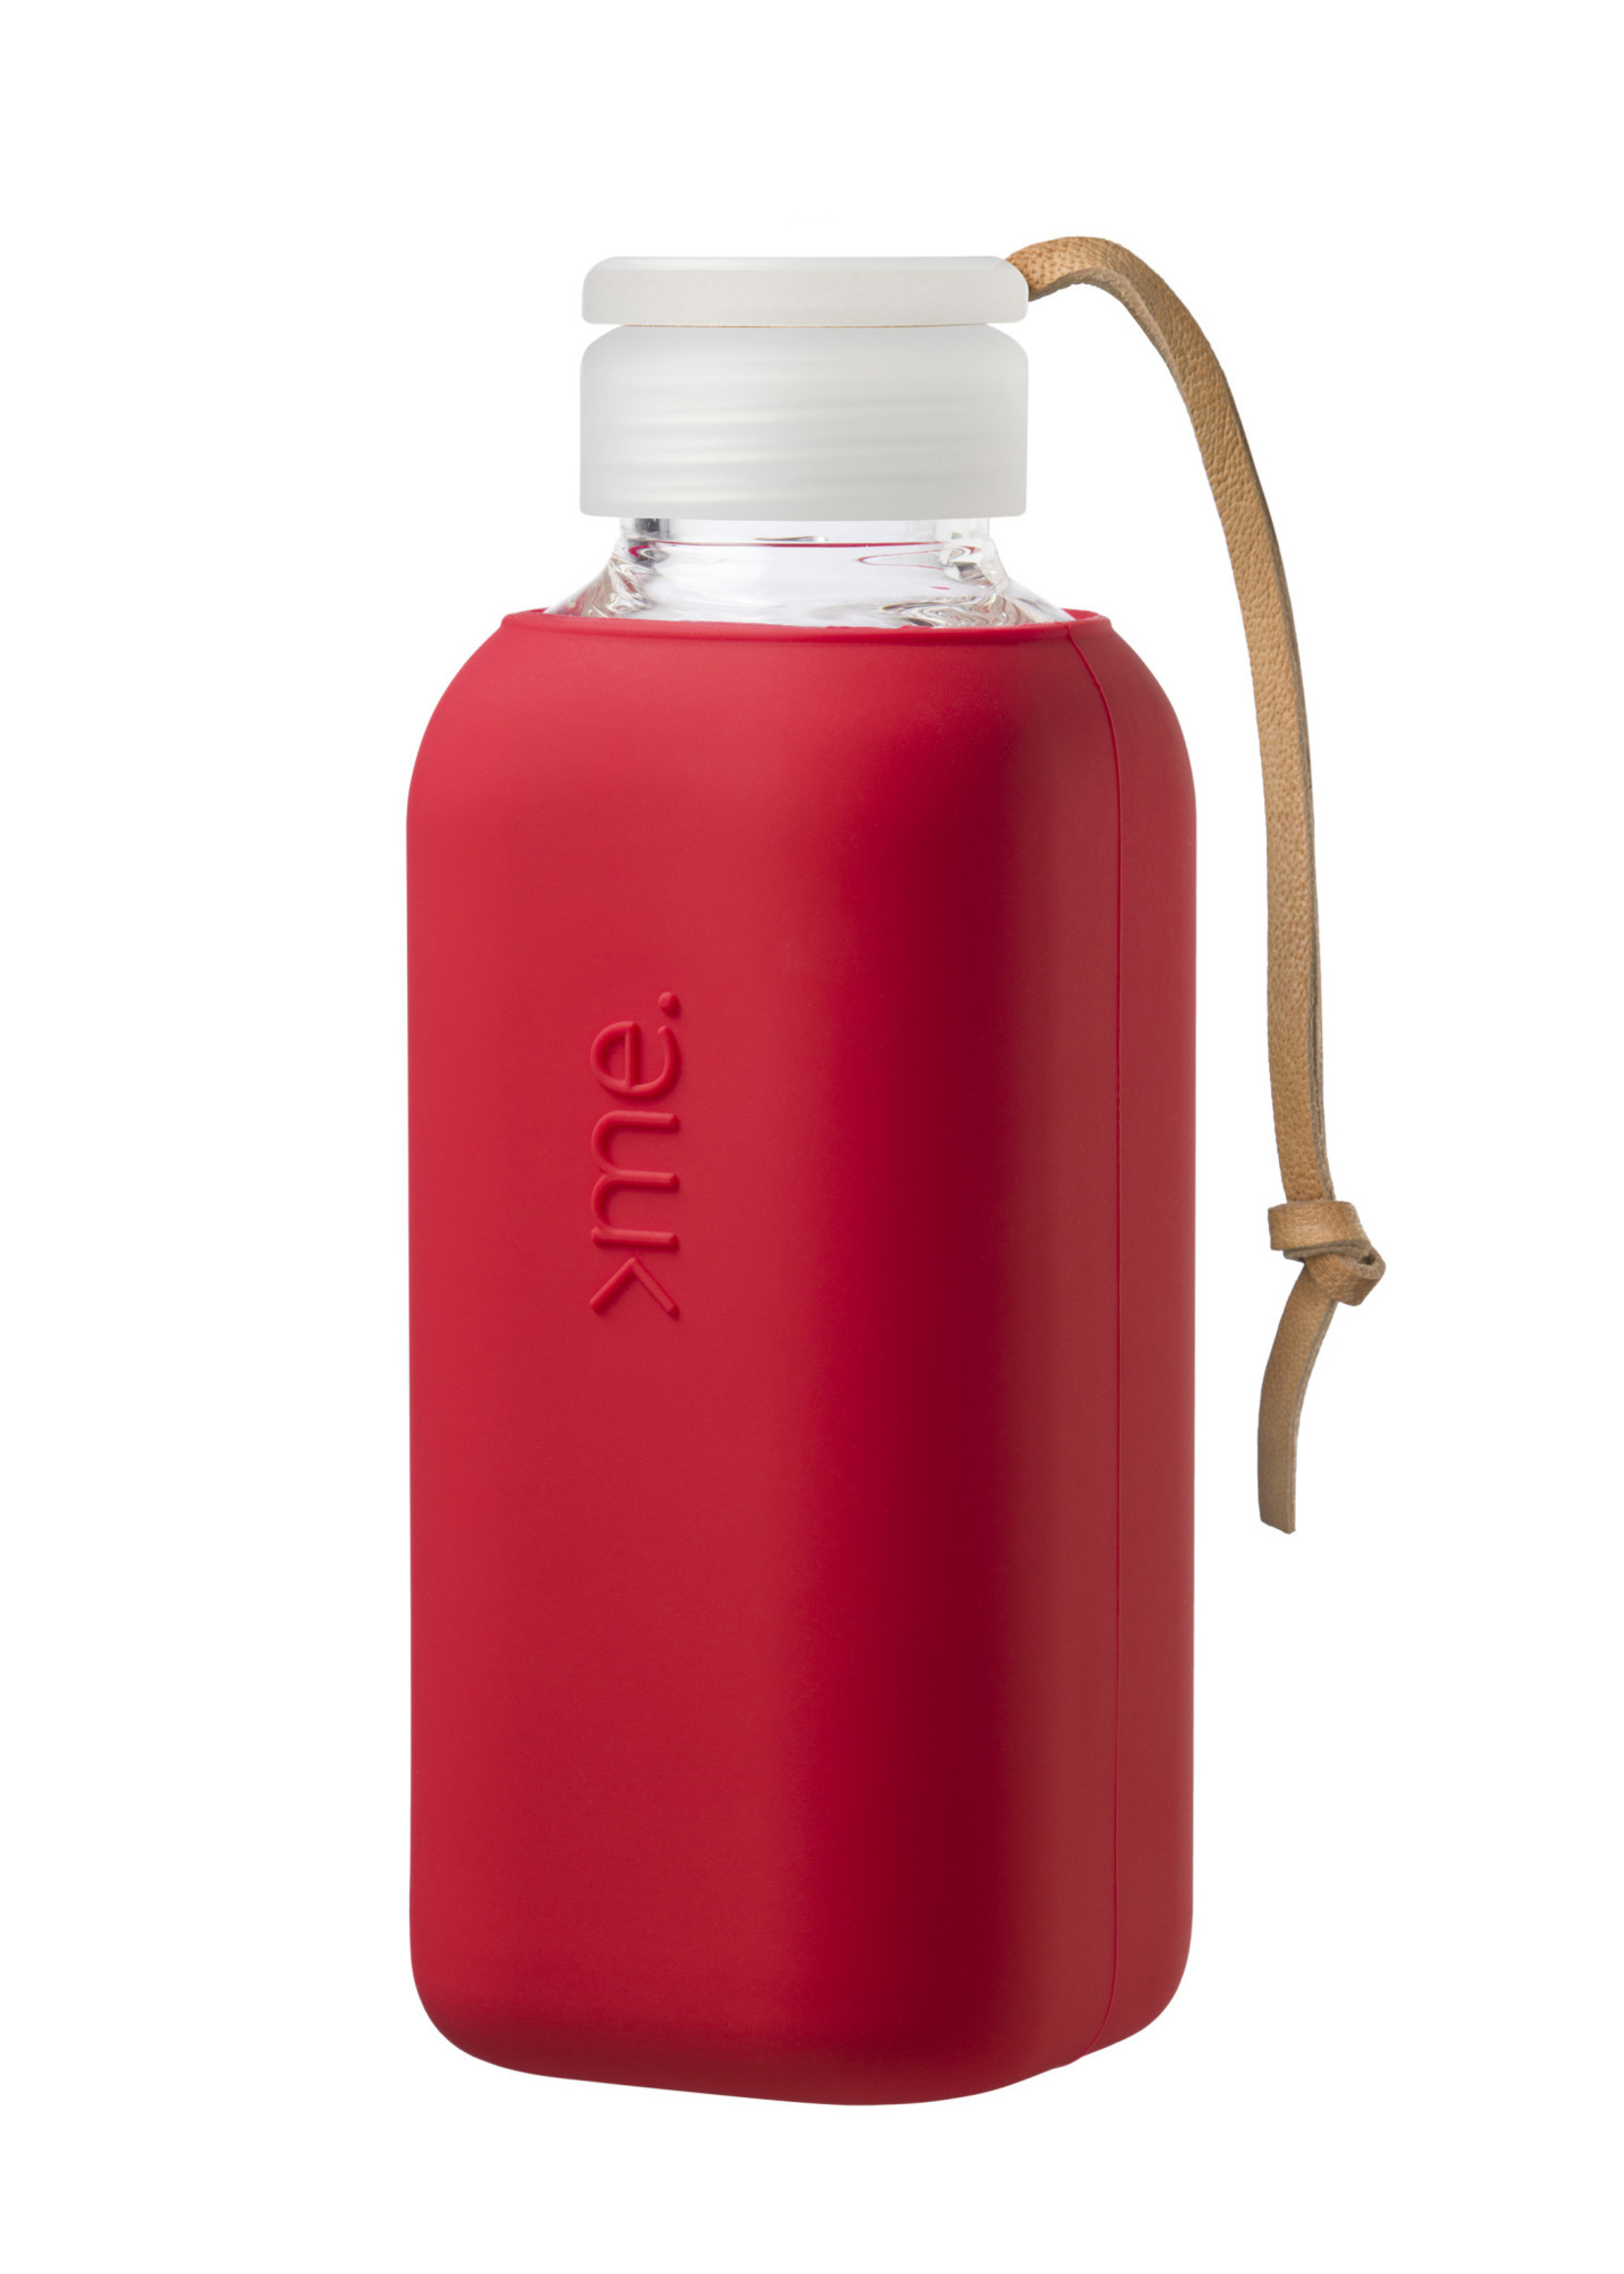 SQUIREME SQUIREME Y1 Bottle 600ml FIRE RED